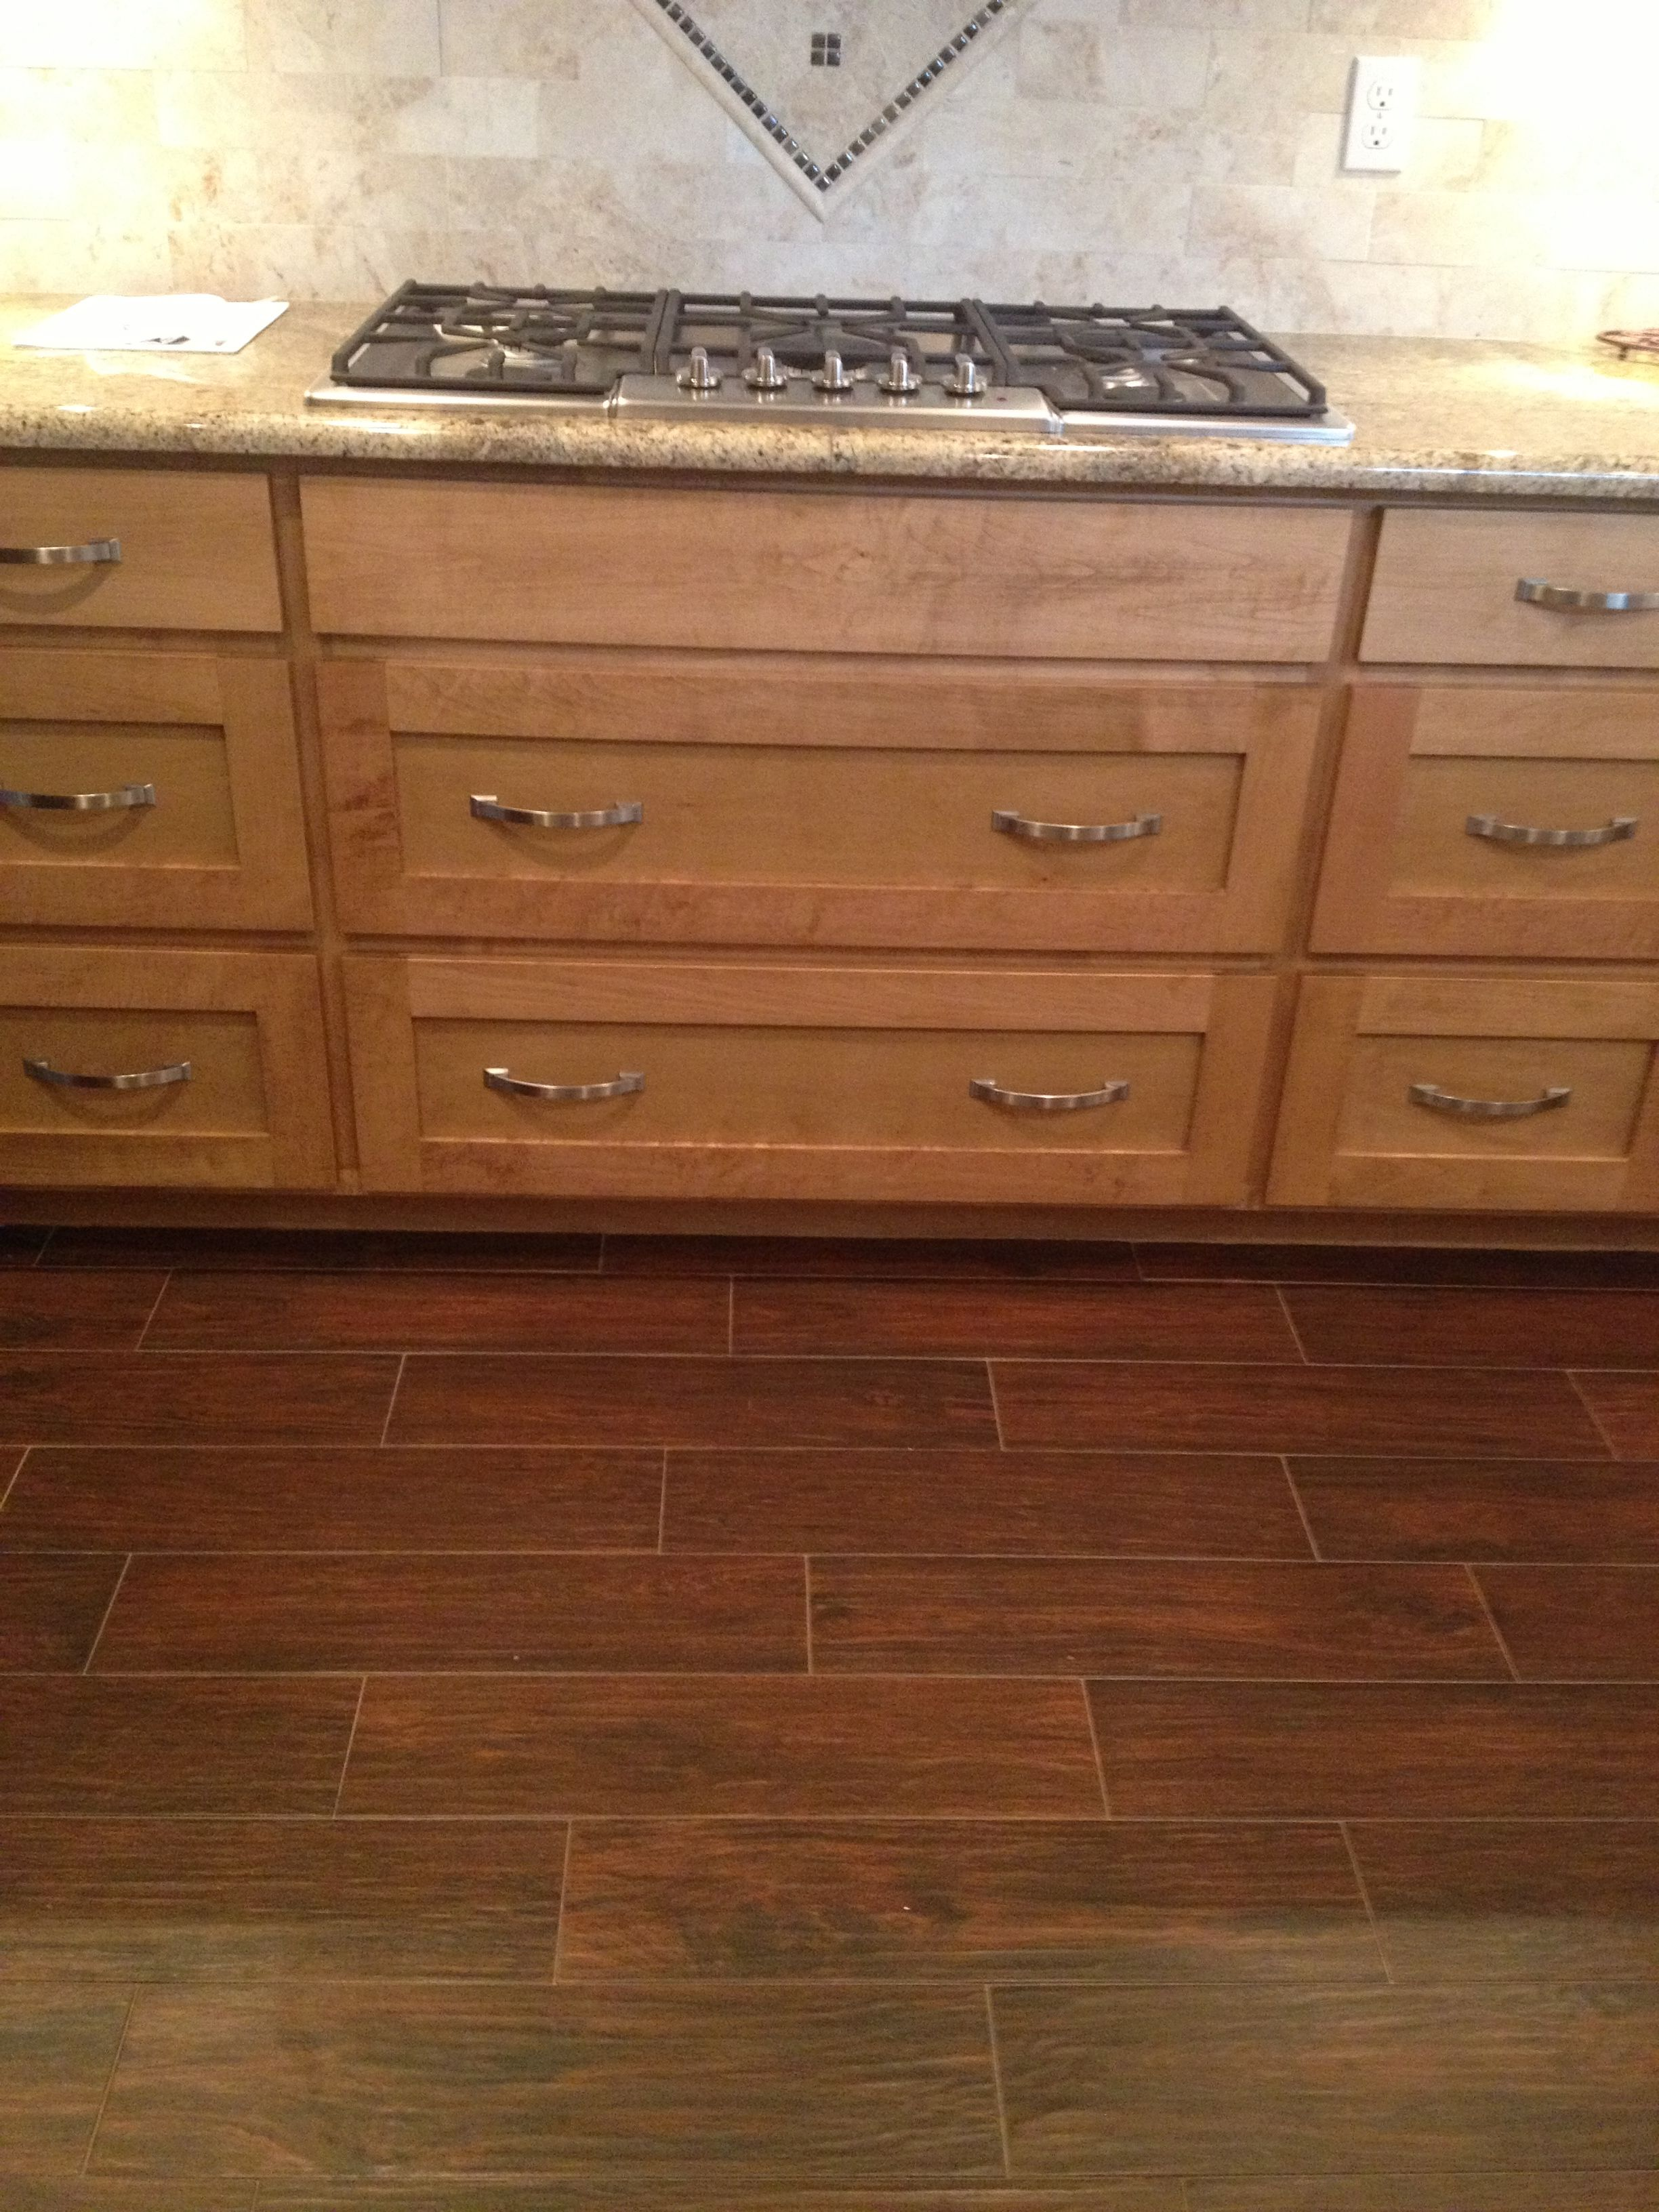 Wood flooring in kitchens and baths wood plank tile tile flooring ceramic wood tile planks wood plank tile flooring dailygadgetfo Image collections